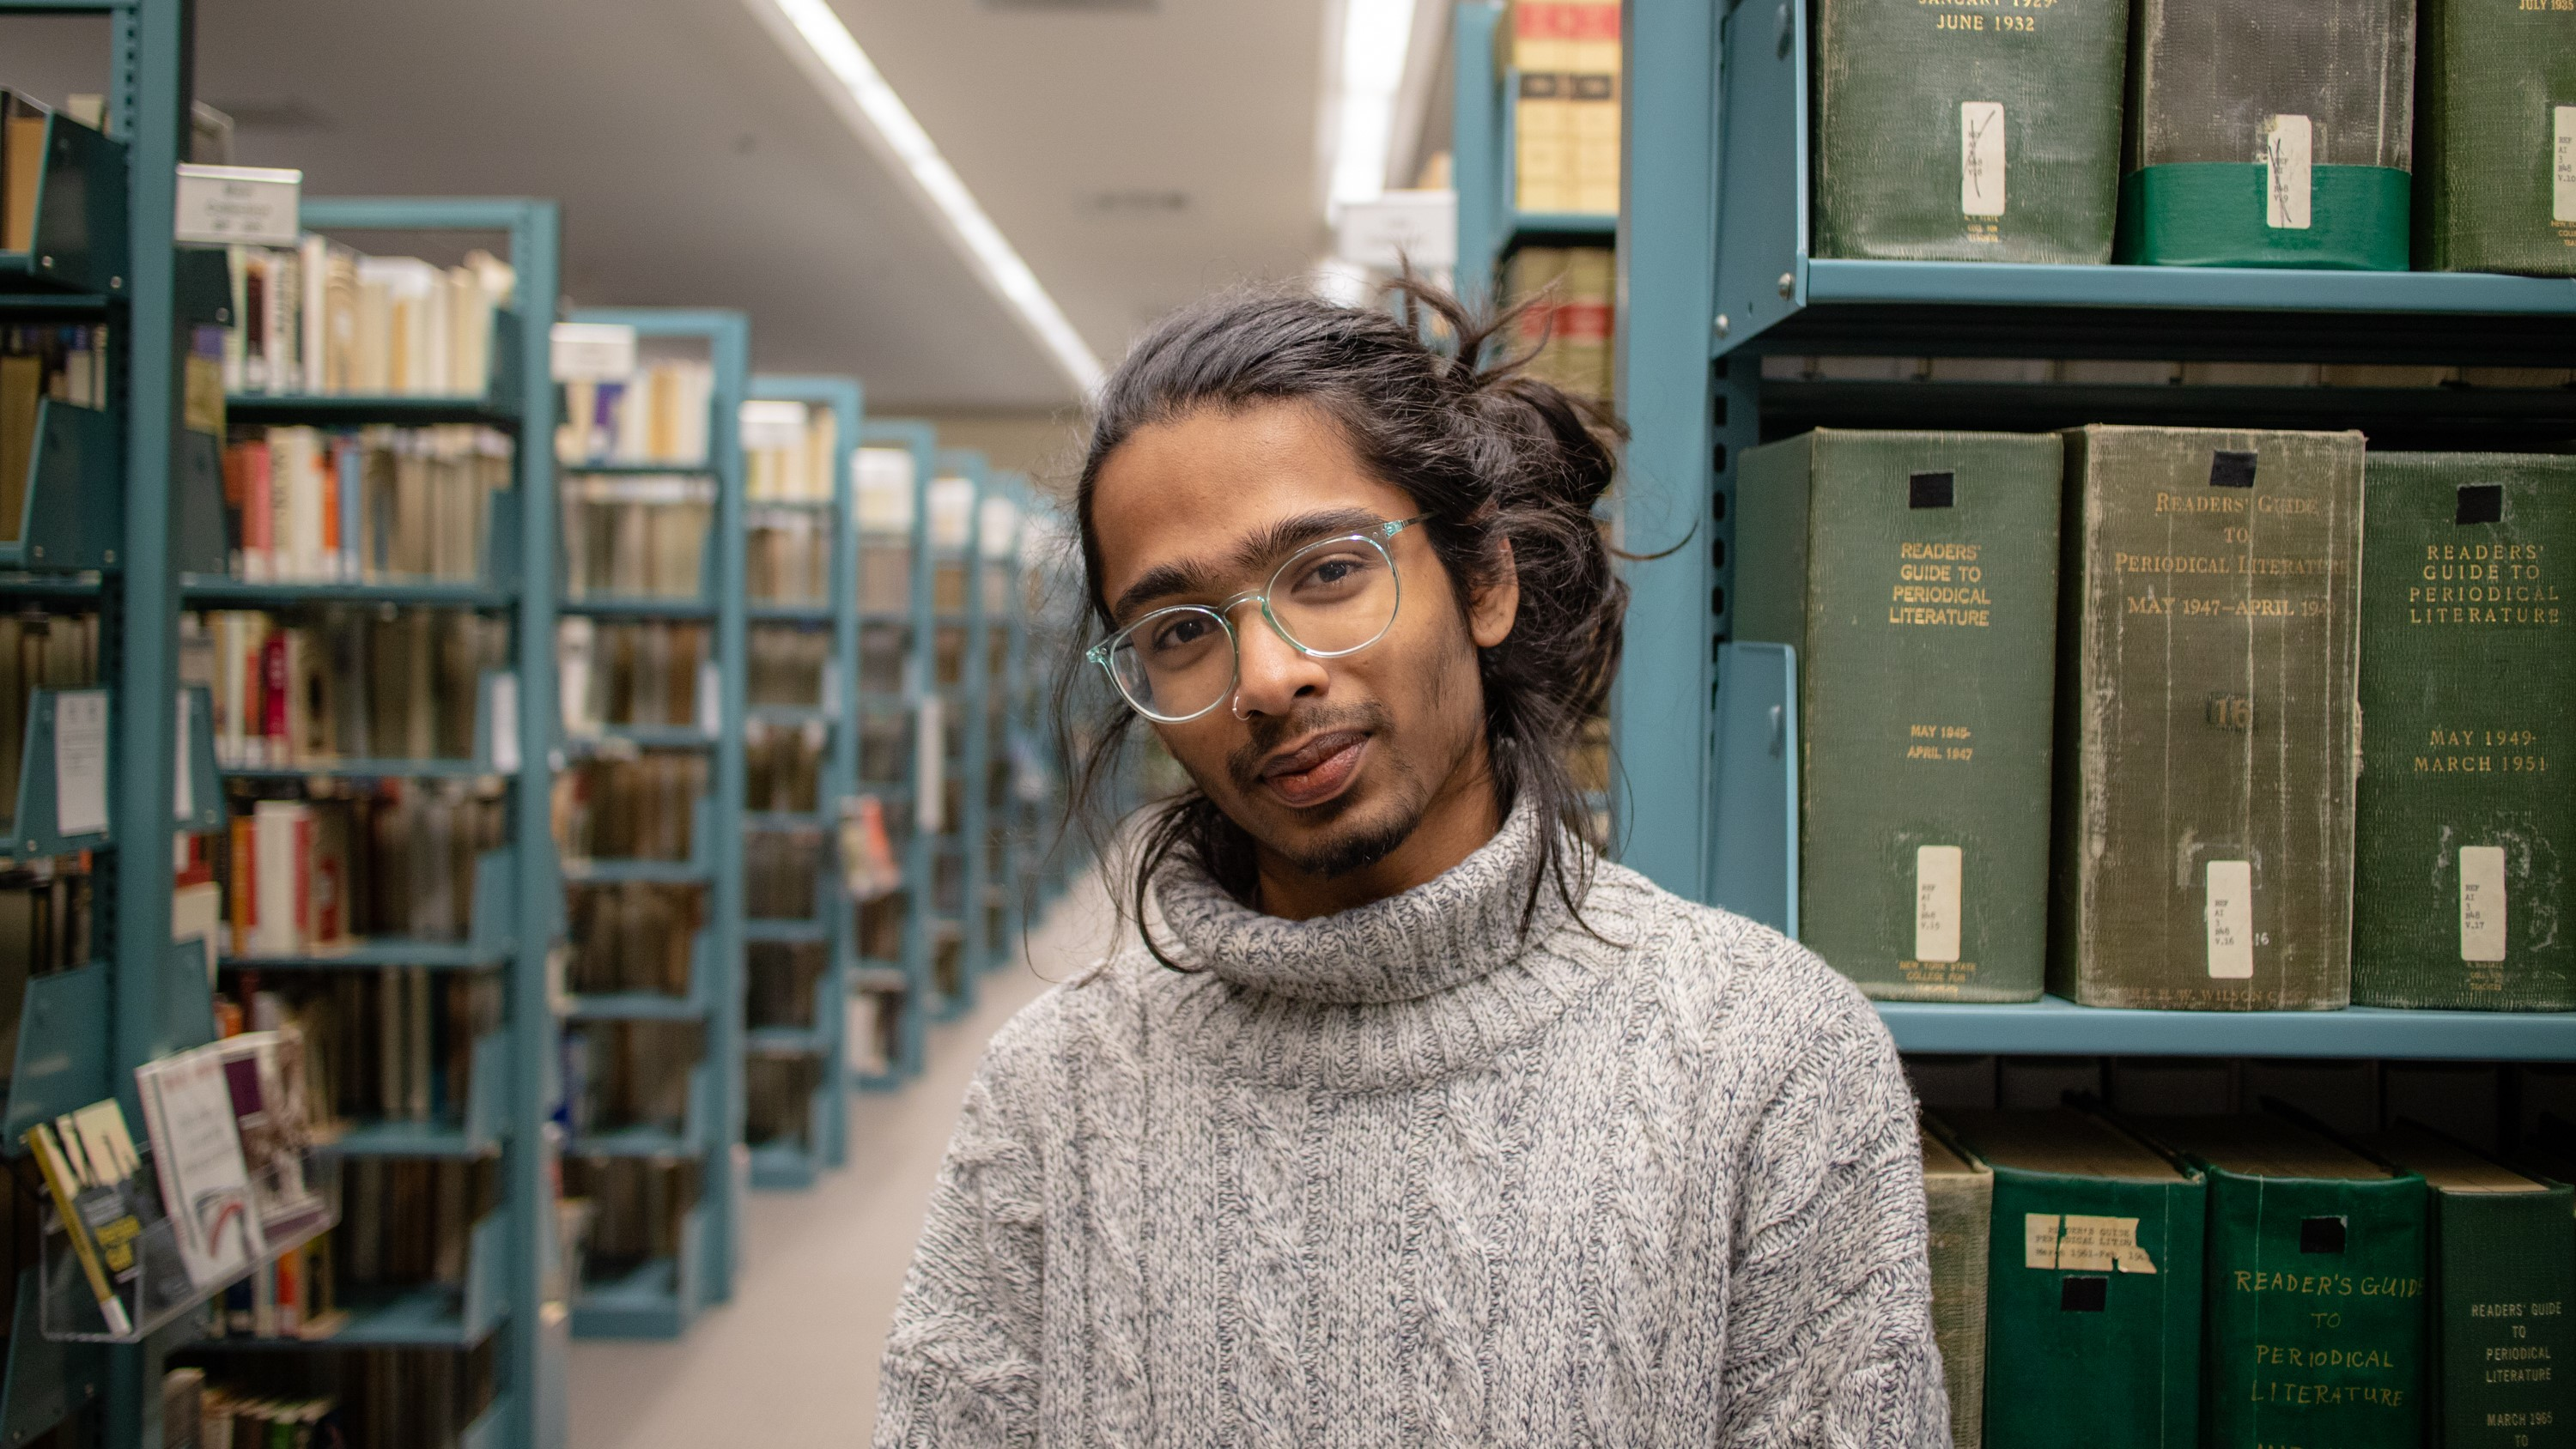 While archiving the personal papers of Edward Williams West, Aadityakrisha Sathish '19 learned ab...